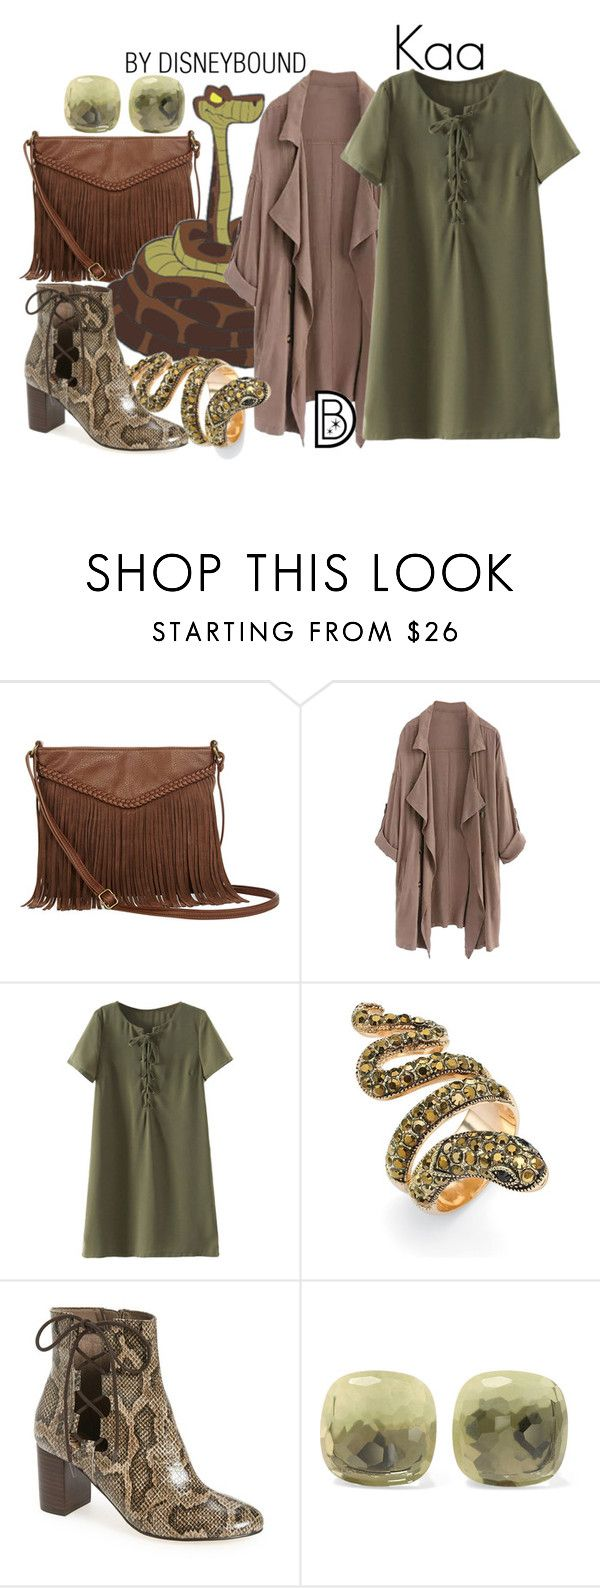 """""""Kaa"""" by leslieakay ❤ liked on Polyvore featuring T-shirt & Jeans, WithChic, Palm Beach Jewelry, Bella Vita, Pomellato, disney, disneybound and disneycharacter"""